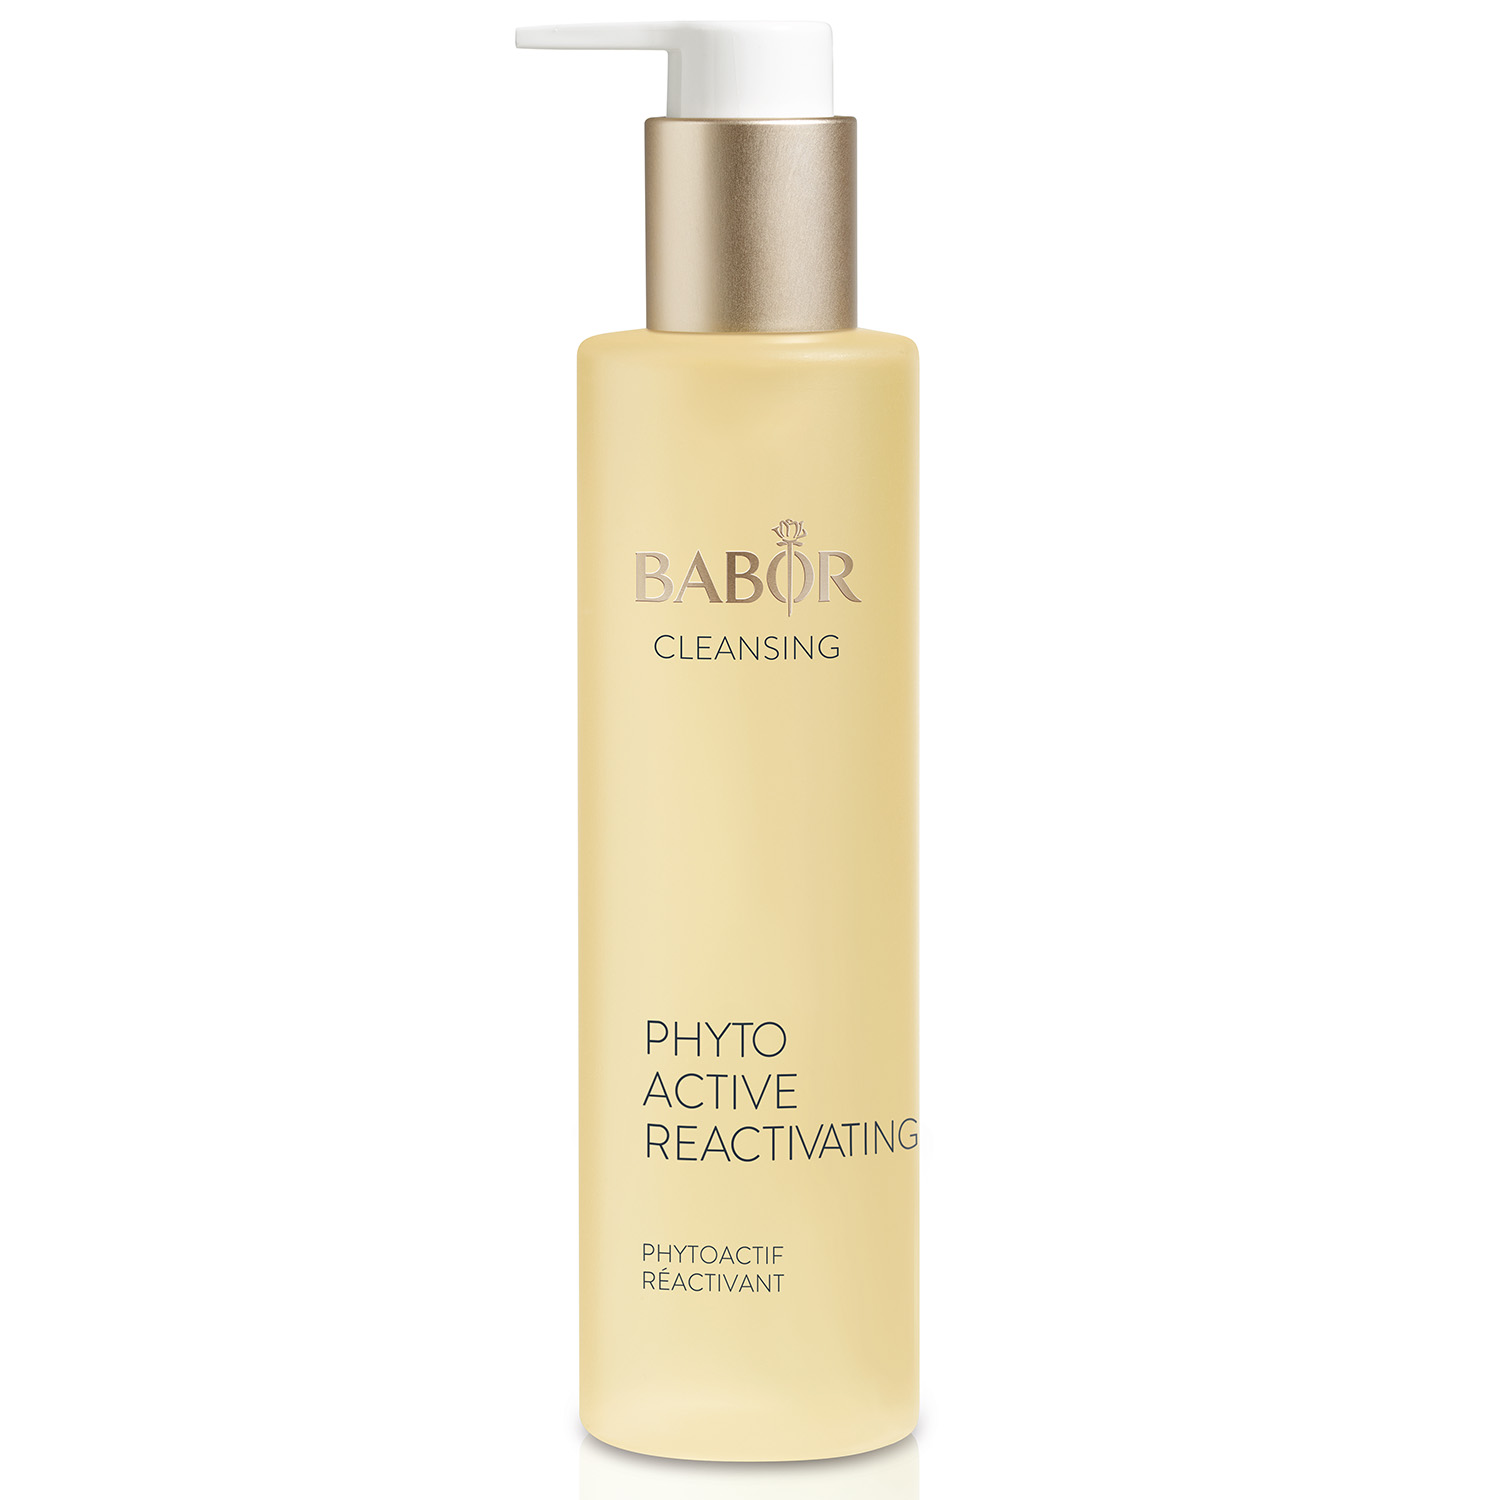 BABOR CLEANSING PHYTOACTIVE REACTIVATING (100 ml)